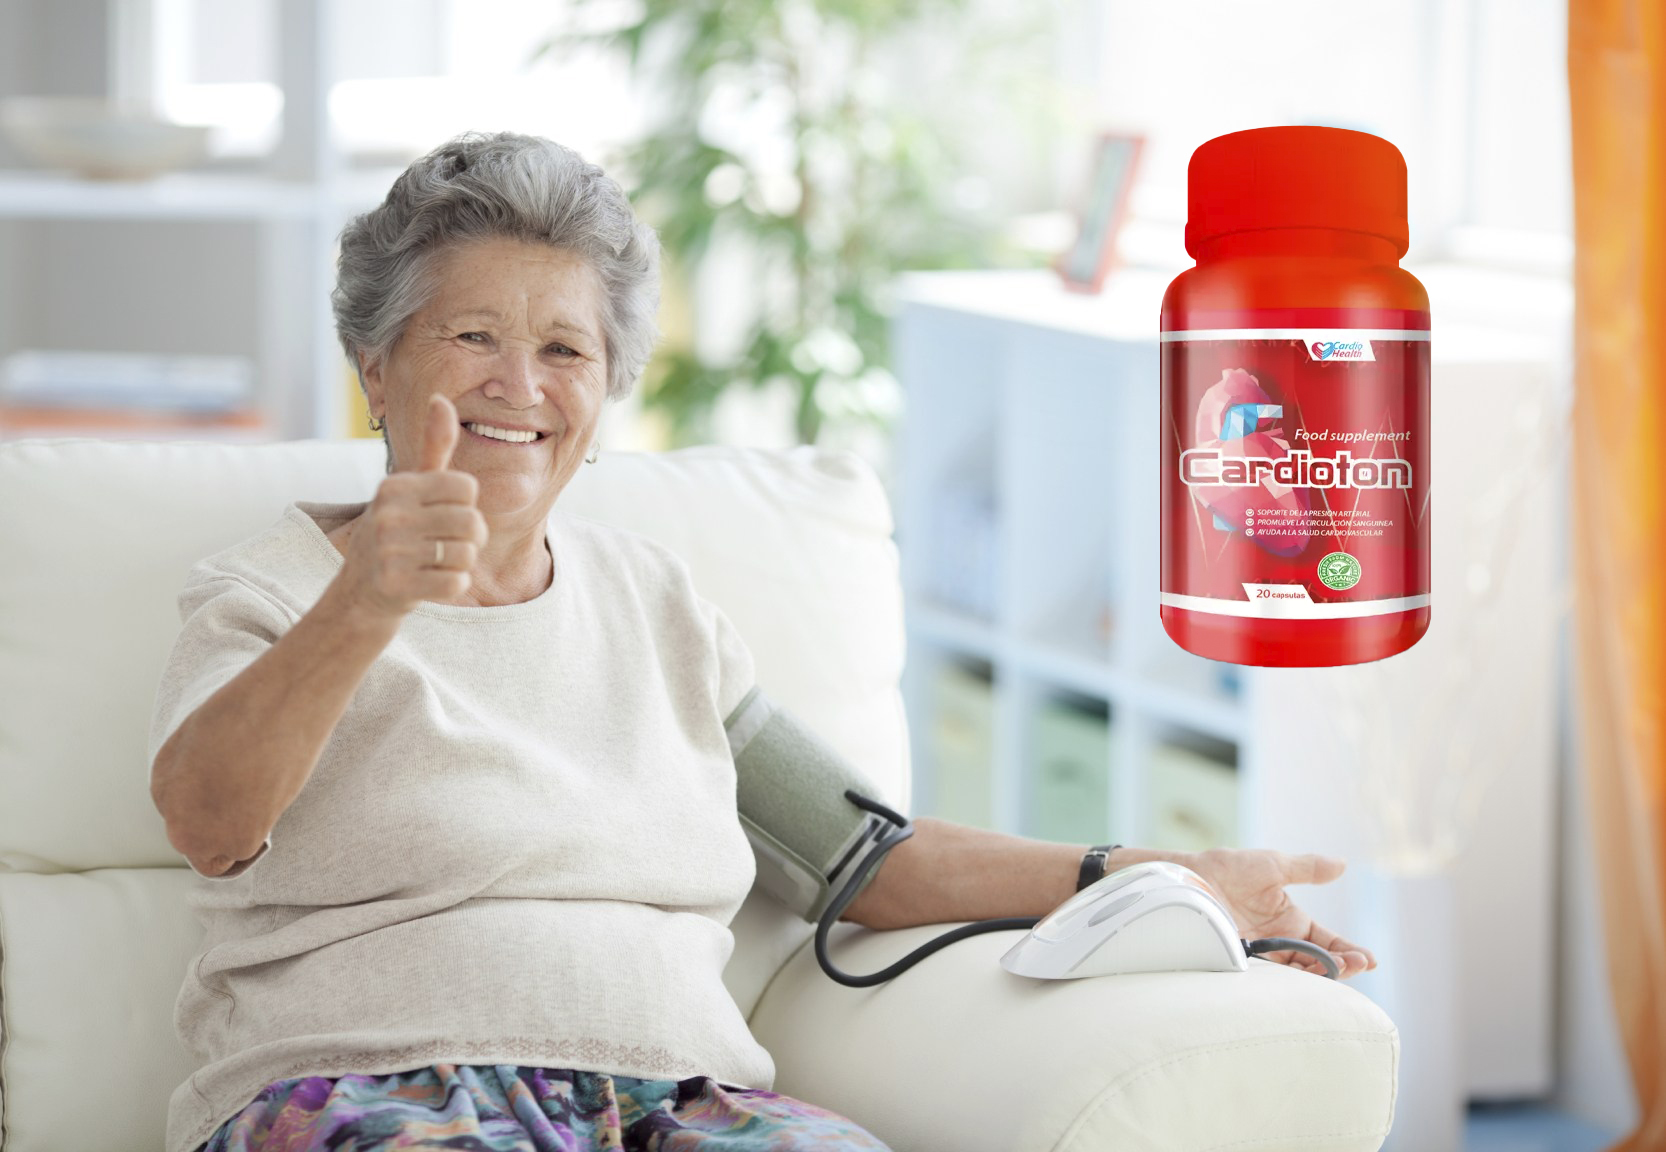 Cardioton capsules how to take it, how does it work, side effects